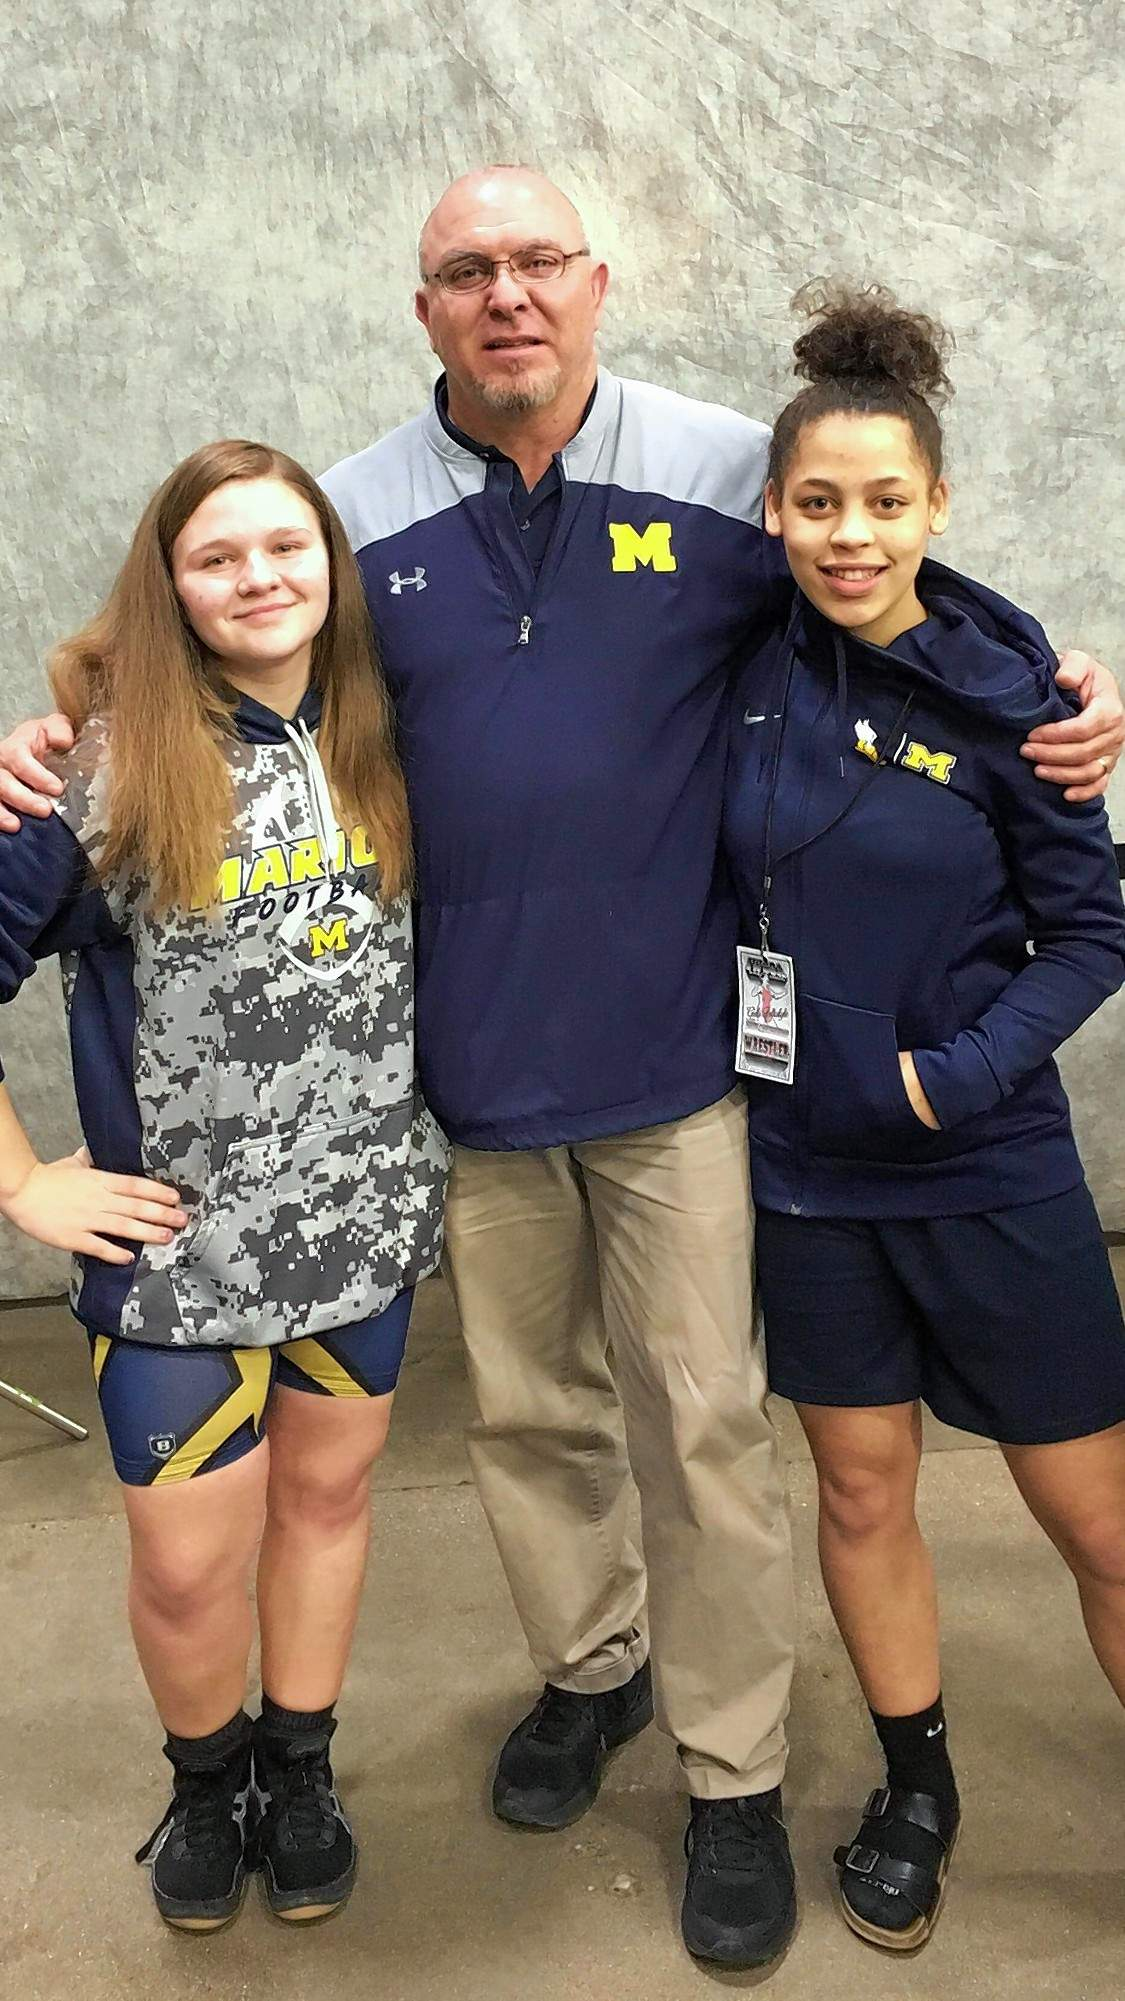 Marion High School wrestling coach Darren Lindsey is shown here with his first two female wrestlers - Jade Napier and Emma McGee, who both  qualified for a state meet.